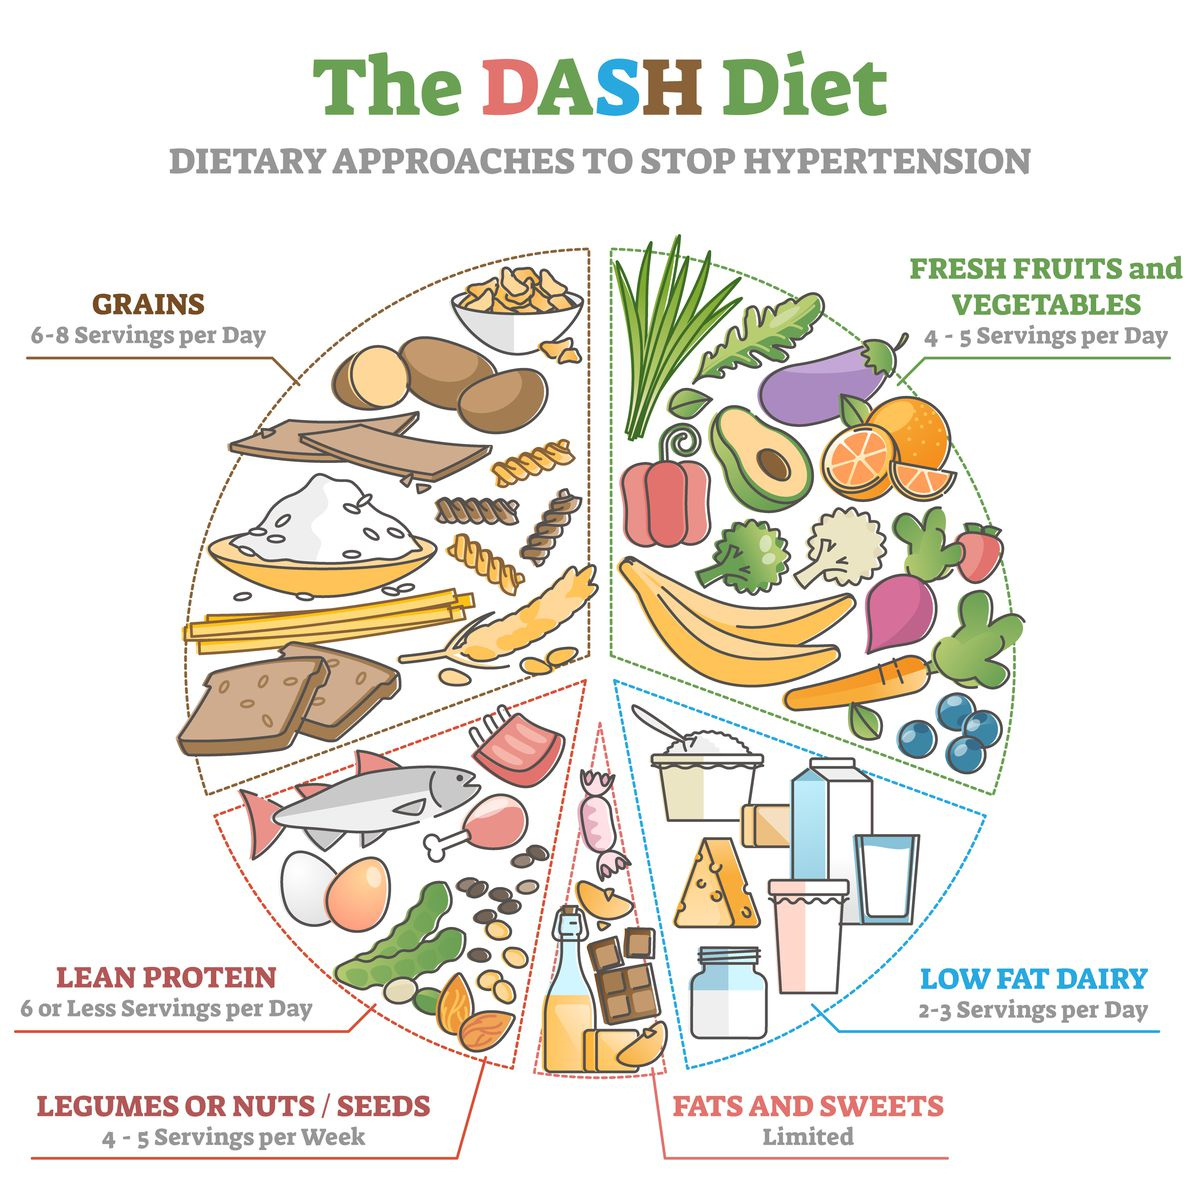 Lower blood pressure with healthy eating and correct portion amounts.